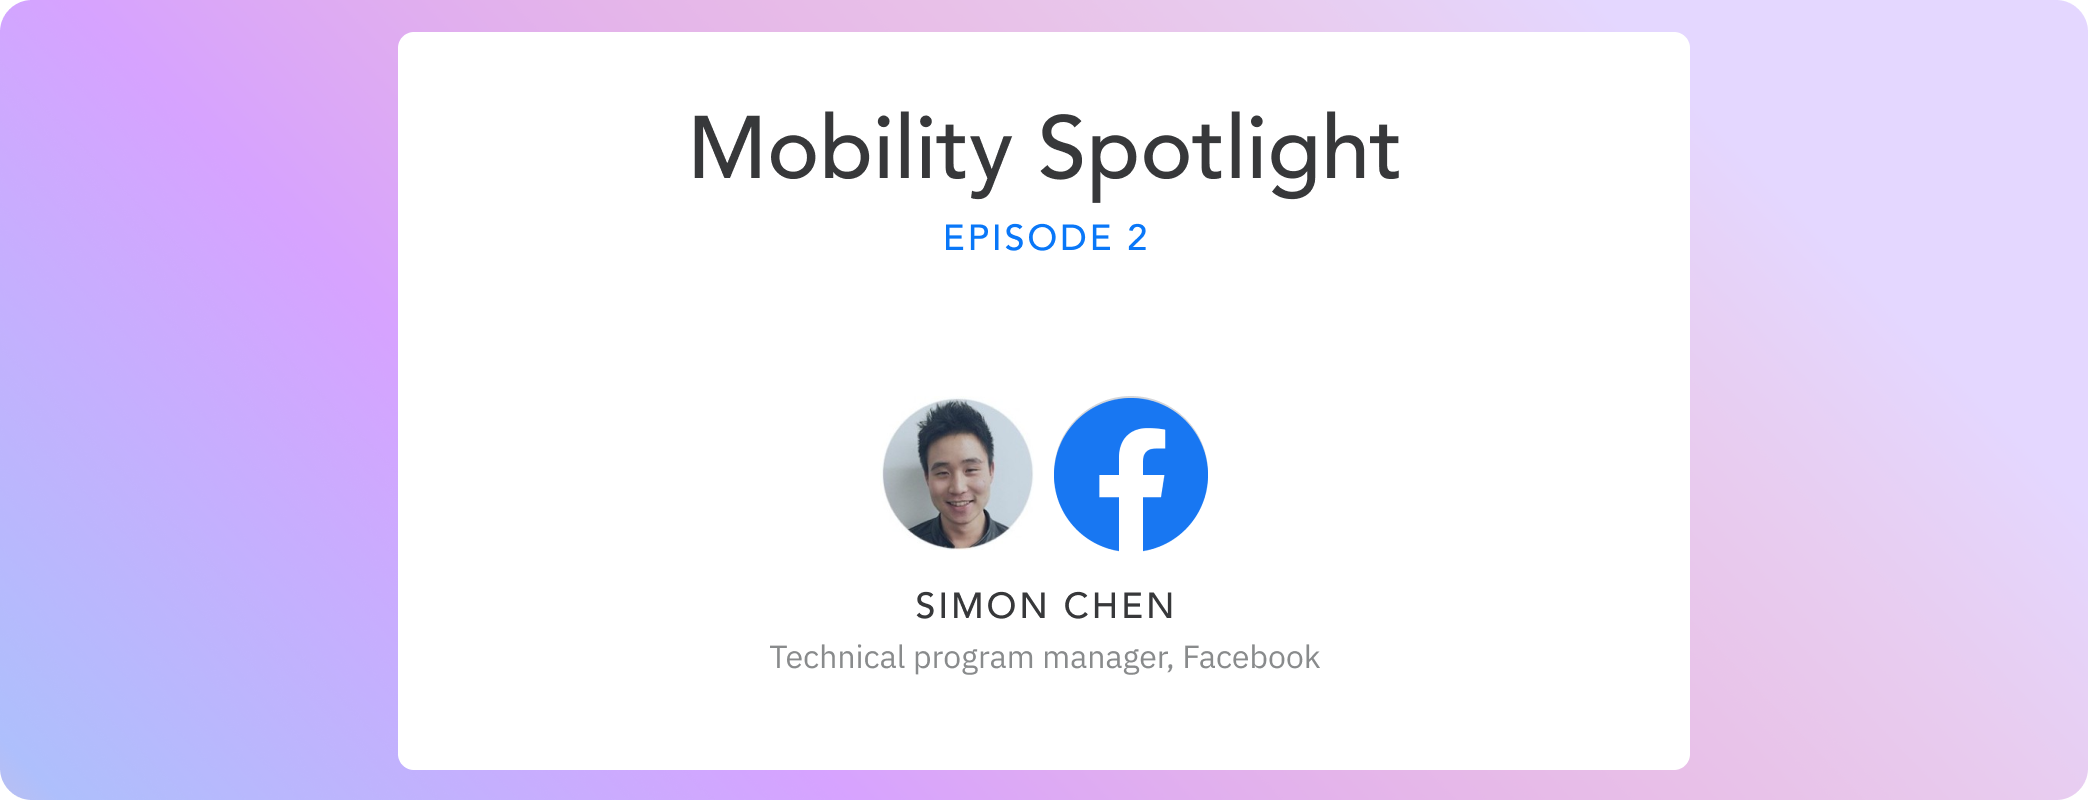 Episode 02: Simon Chen's journey from Executive Assistant to Program Management